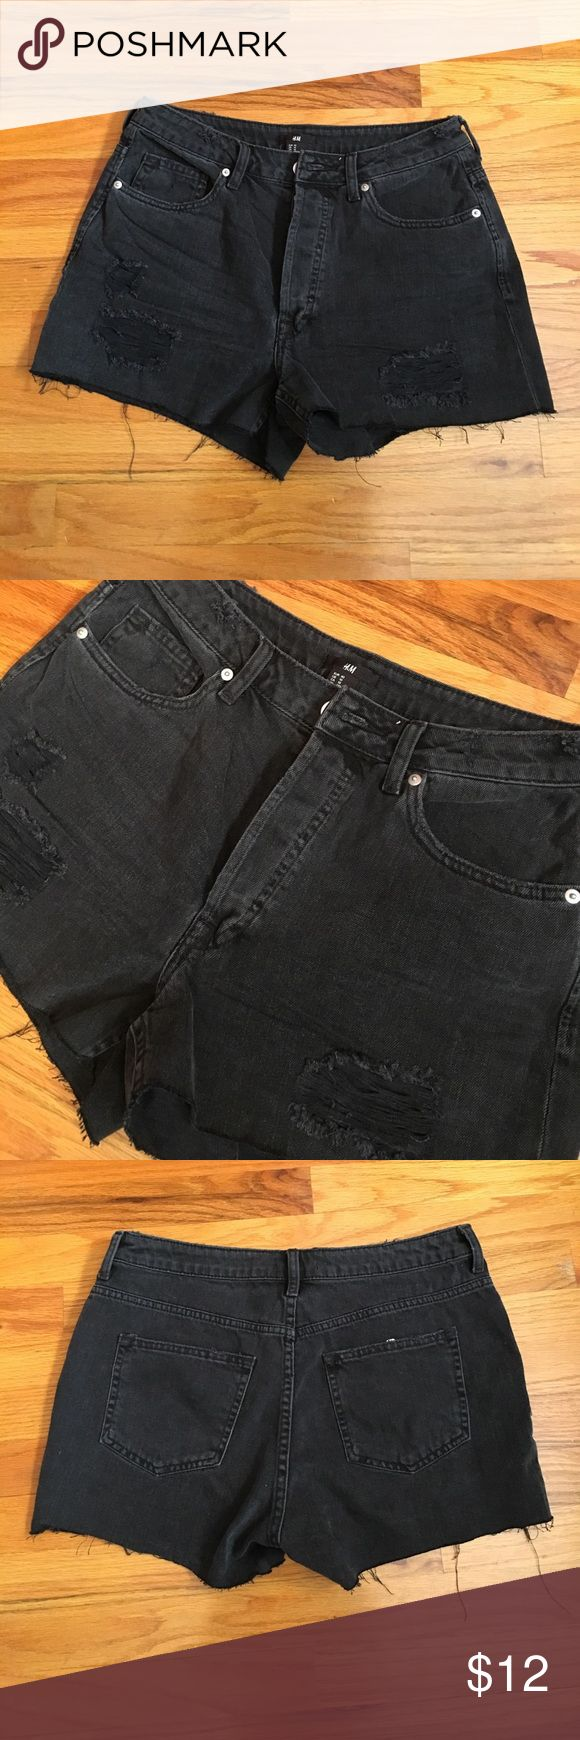 Black high waisted H&M cutoff jean shorts Black high waisted cutoff jean shorts, distressed on from, button fly, 2.5 inseam. Worn once. Bundle discount buy 2 items or more get 30% off! H&M Shorts Jean Shorts